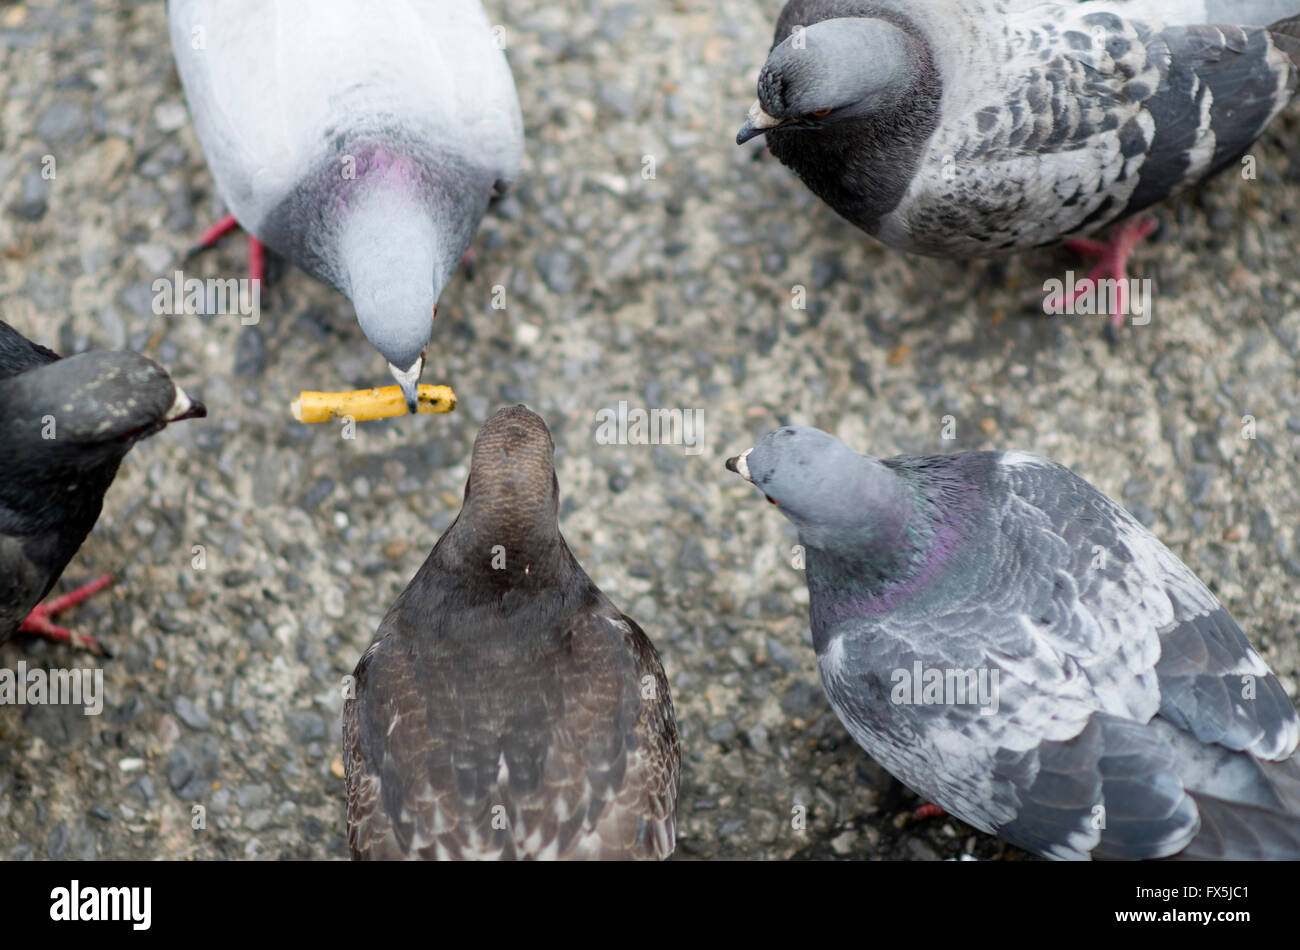 pigeons-standing-in-a-circle-waiting-for